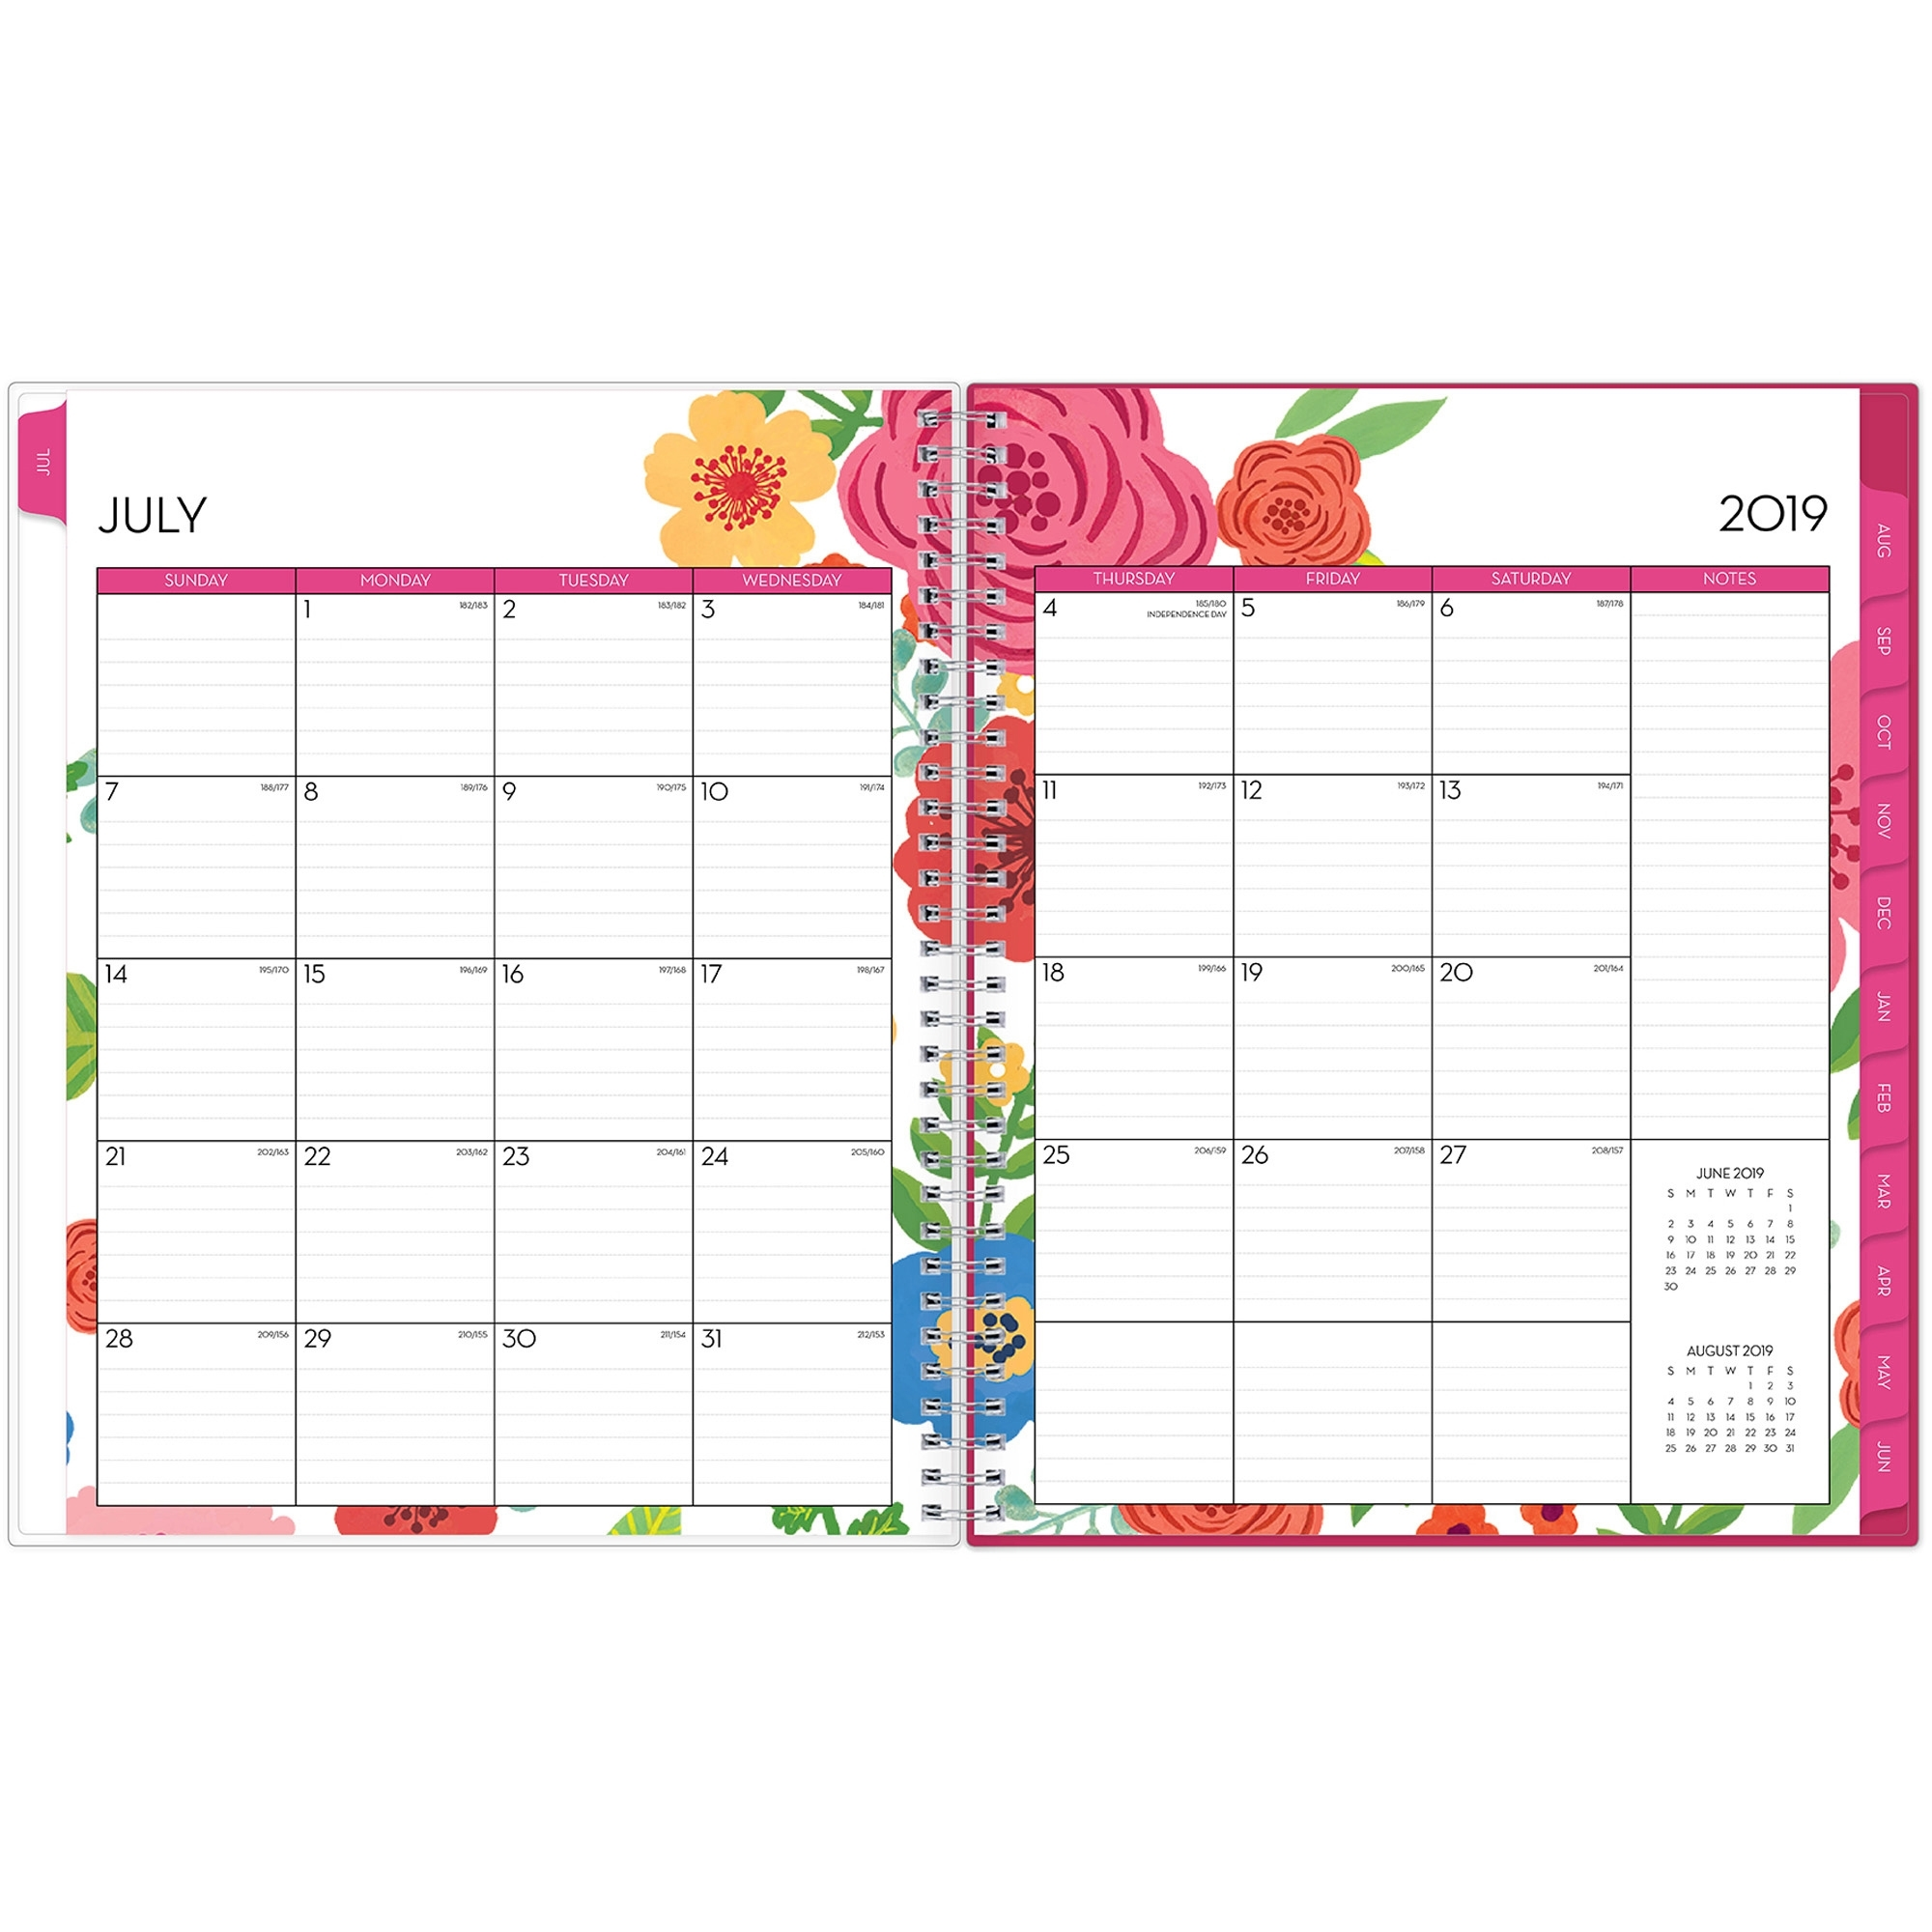 Blue Sky Mahalo Cyo 8.5 X 11 Weekly/monthly Planner - Yes - Weekly intended for 8.5 X 11 Calander Filler For 2020